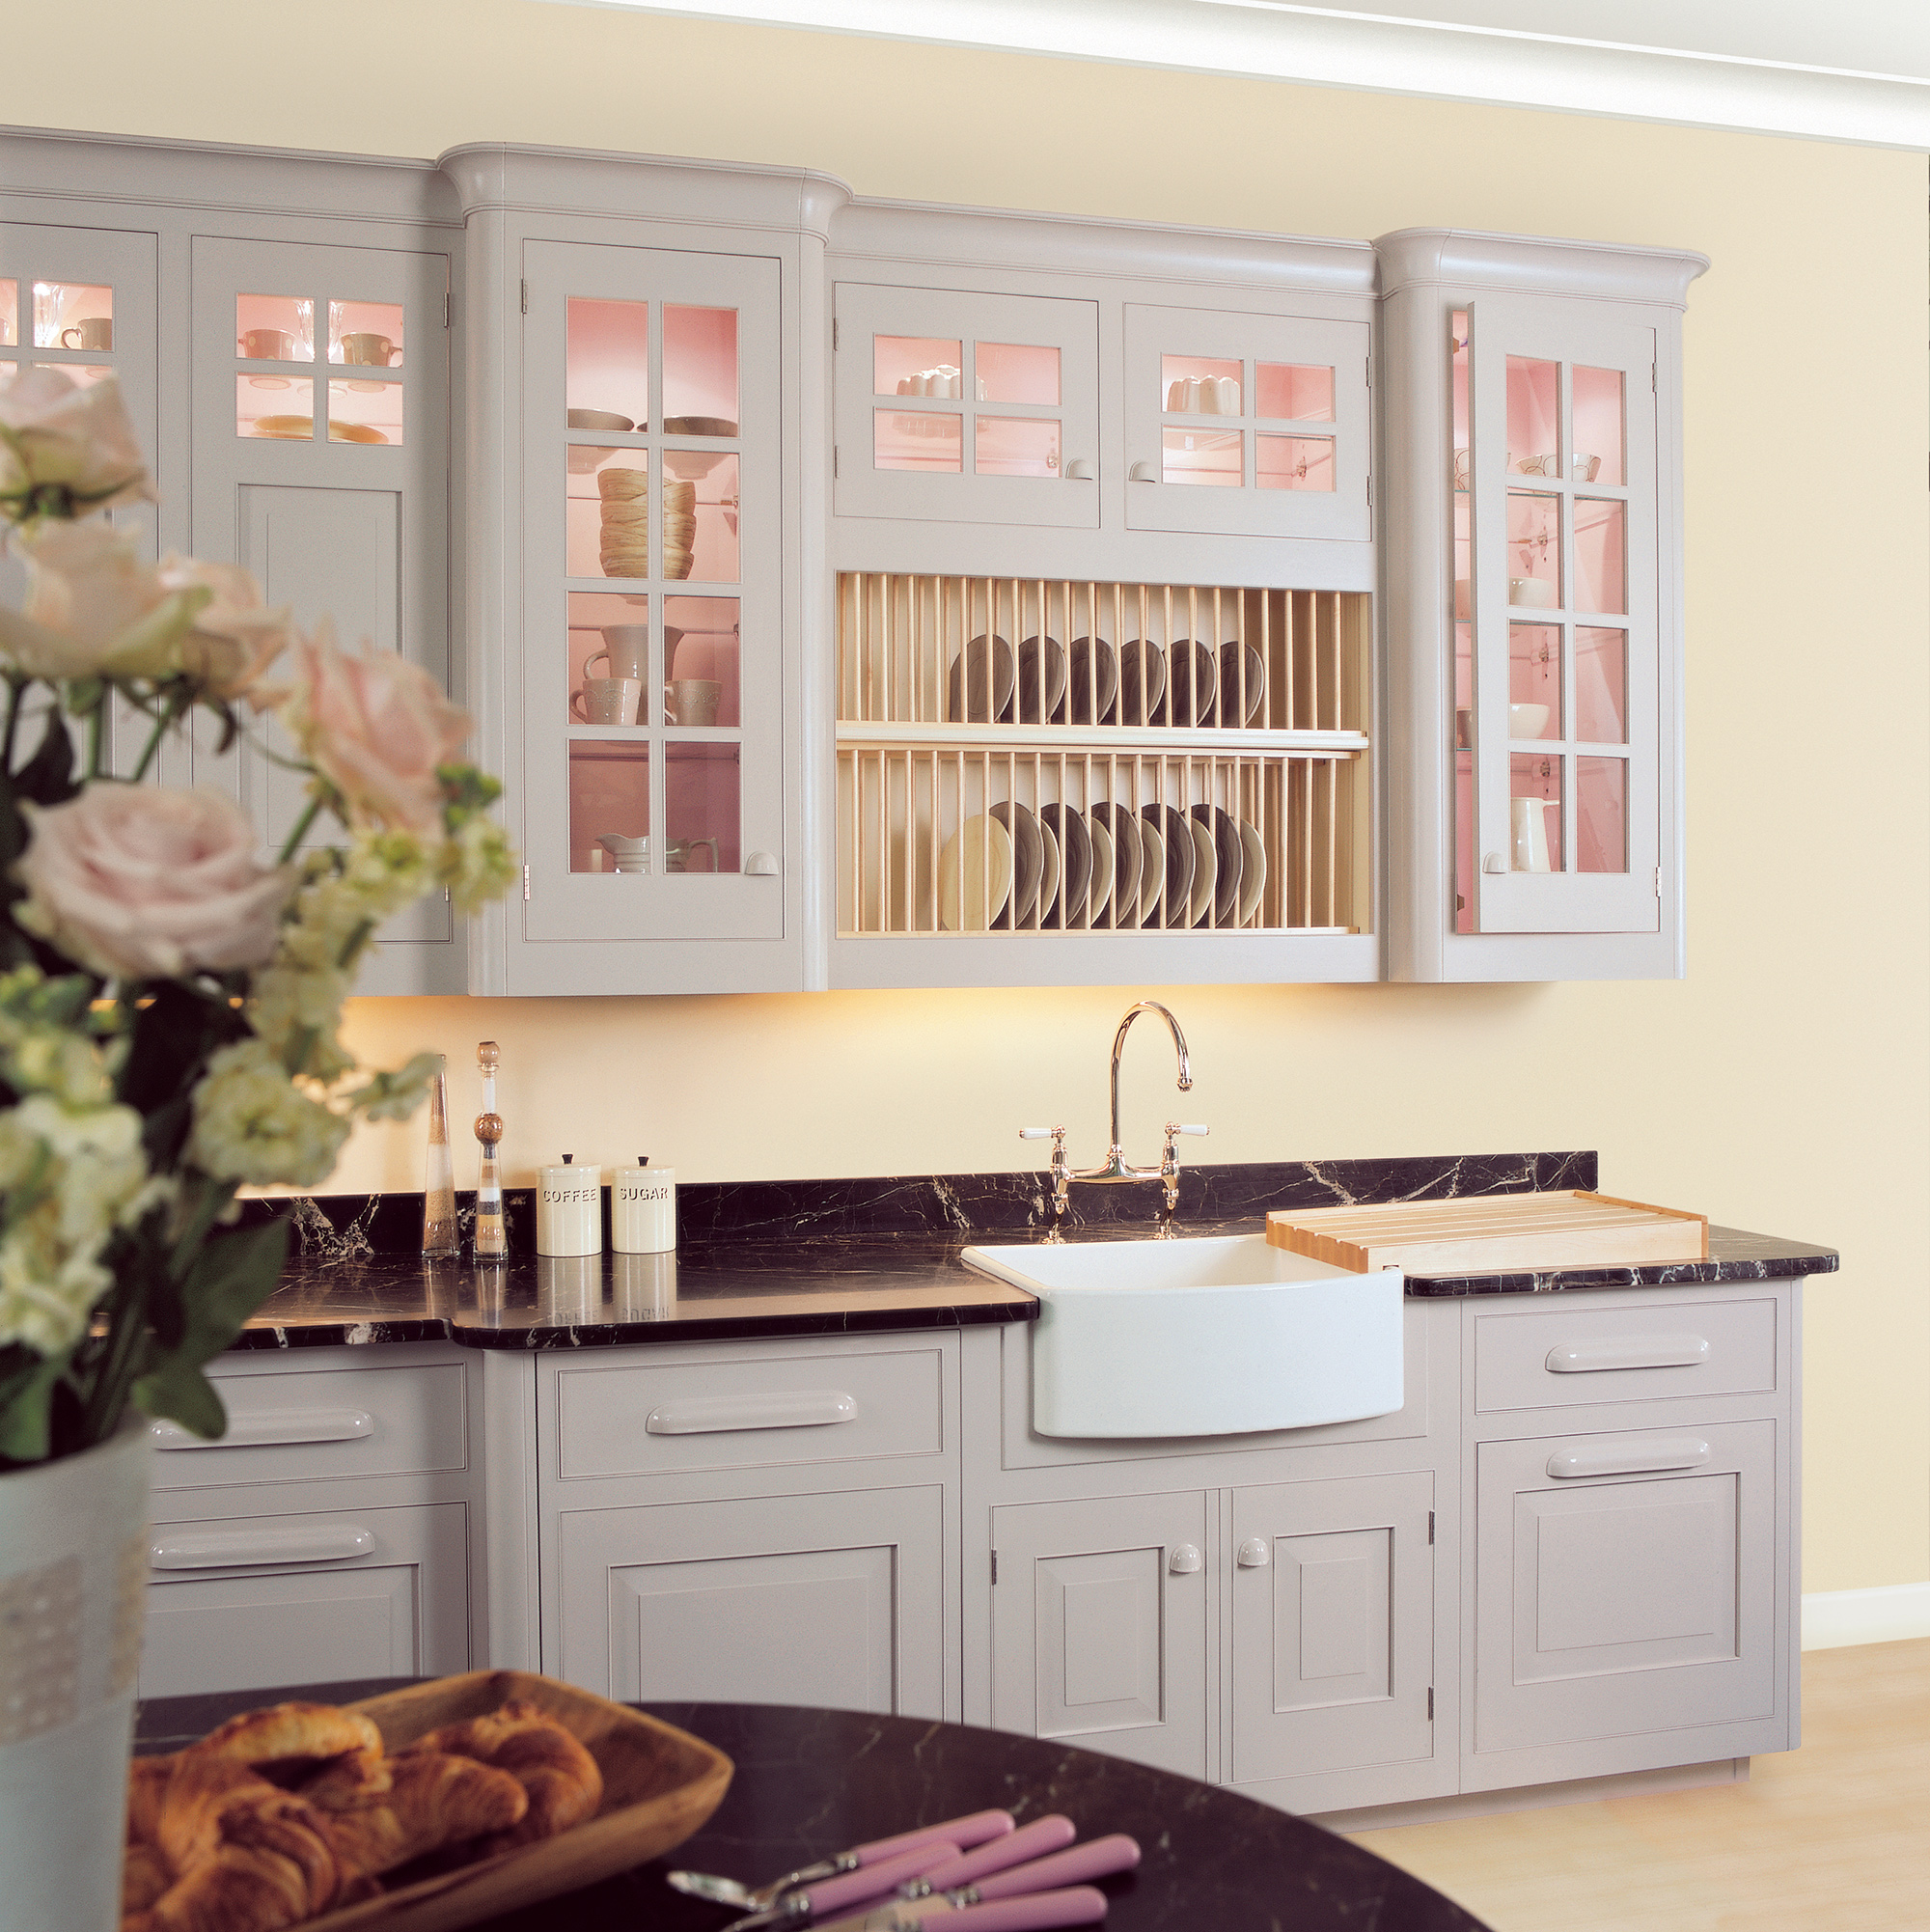 Mark wilkinson furniture collection english classic kitchen 17